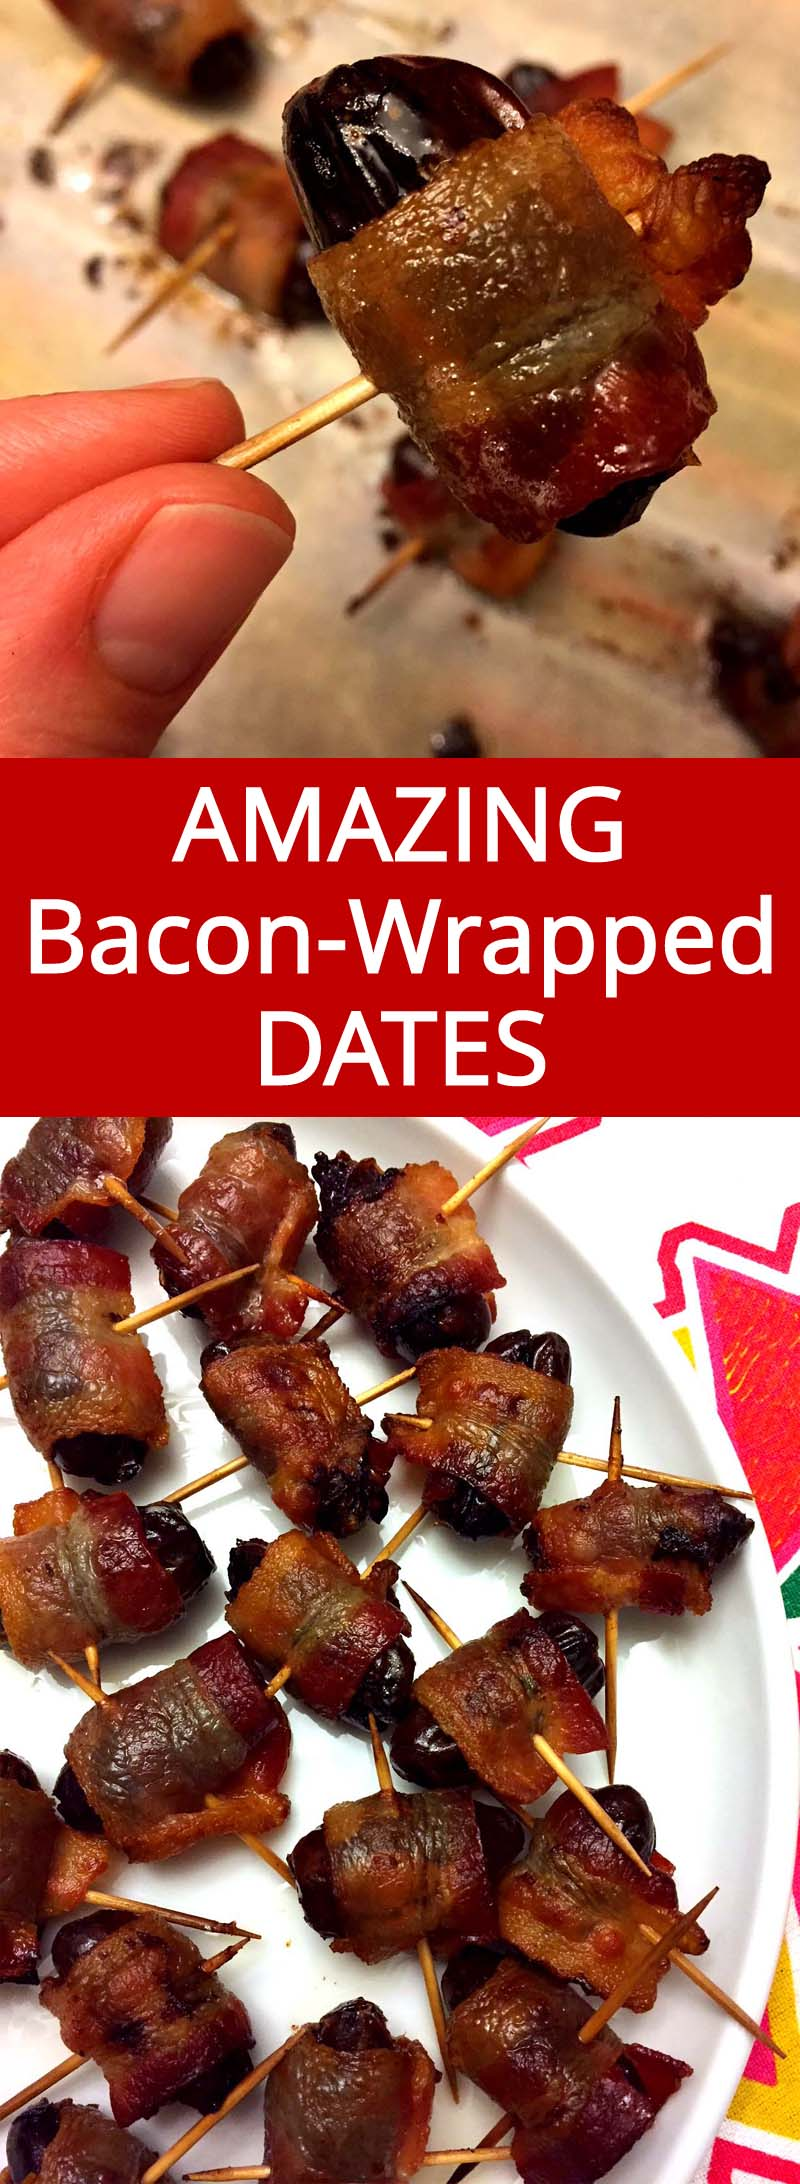 These bacon-wrapped dates are amazing! This is my favorite appetizer, they always disappear immediately! Super easy to make too! Everyone loves bacon wrapped dates!